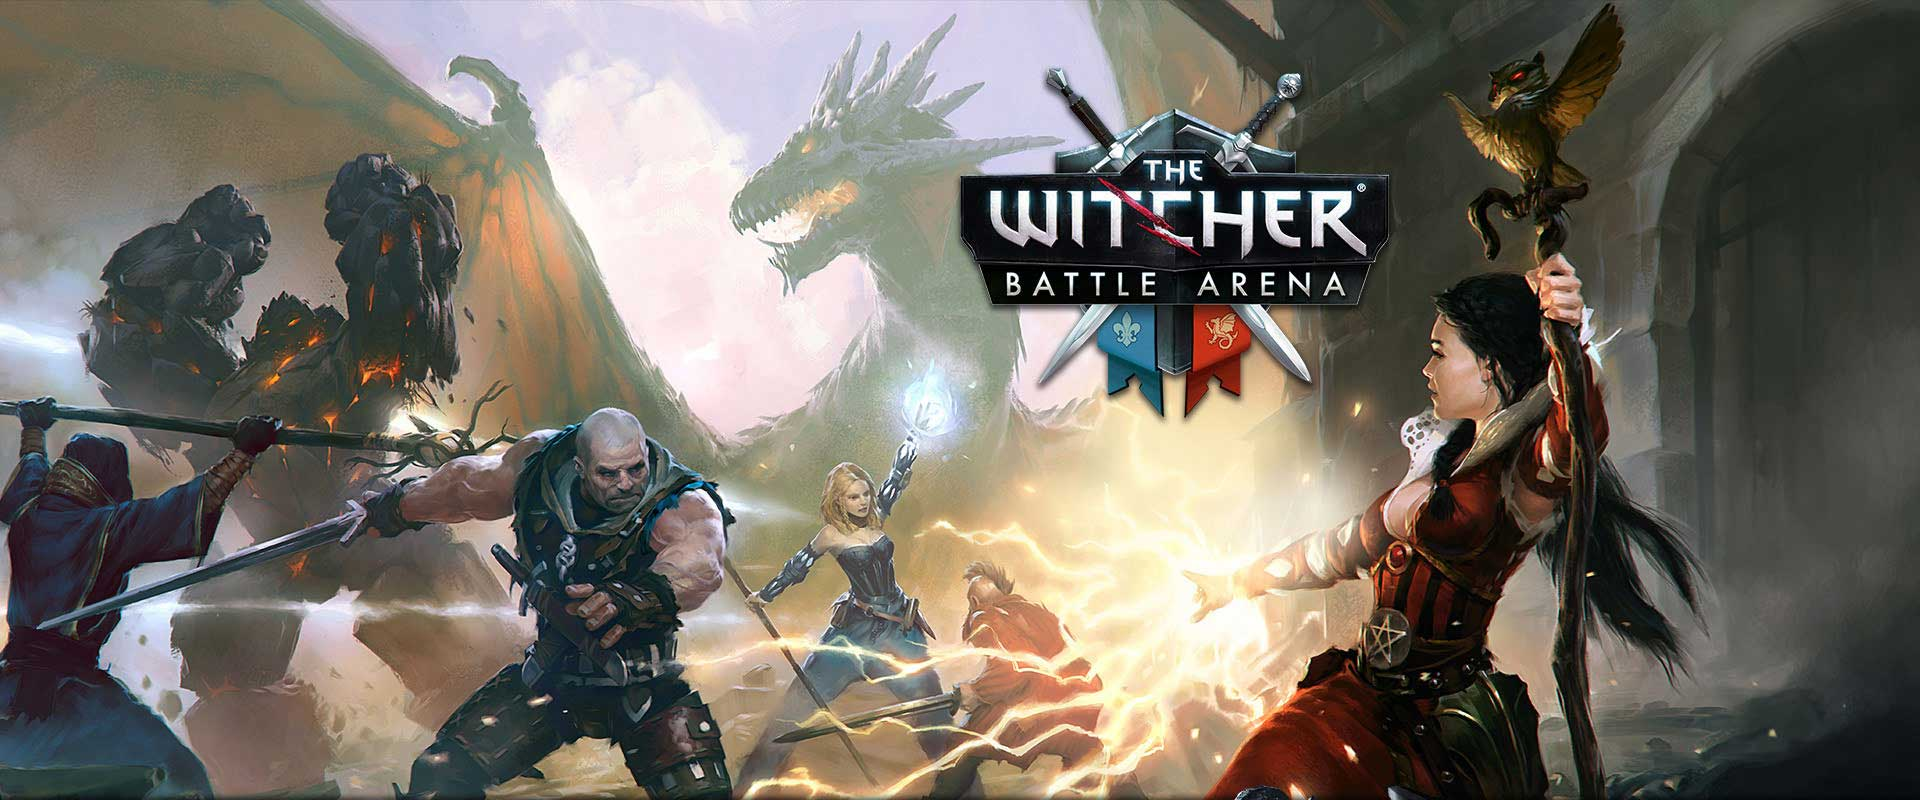 The Witcher Battle Arena | Witcher Wiki | Fandom